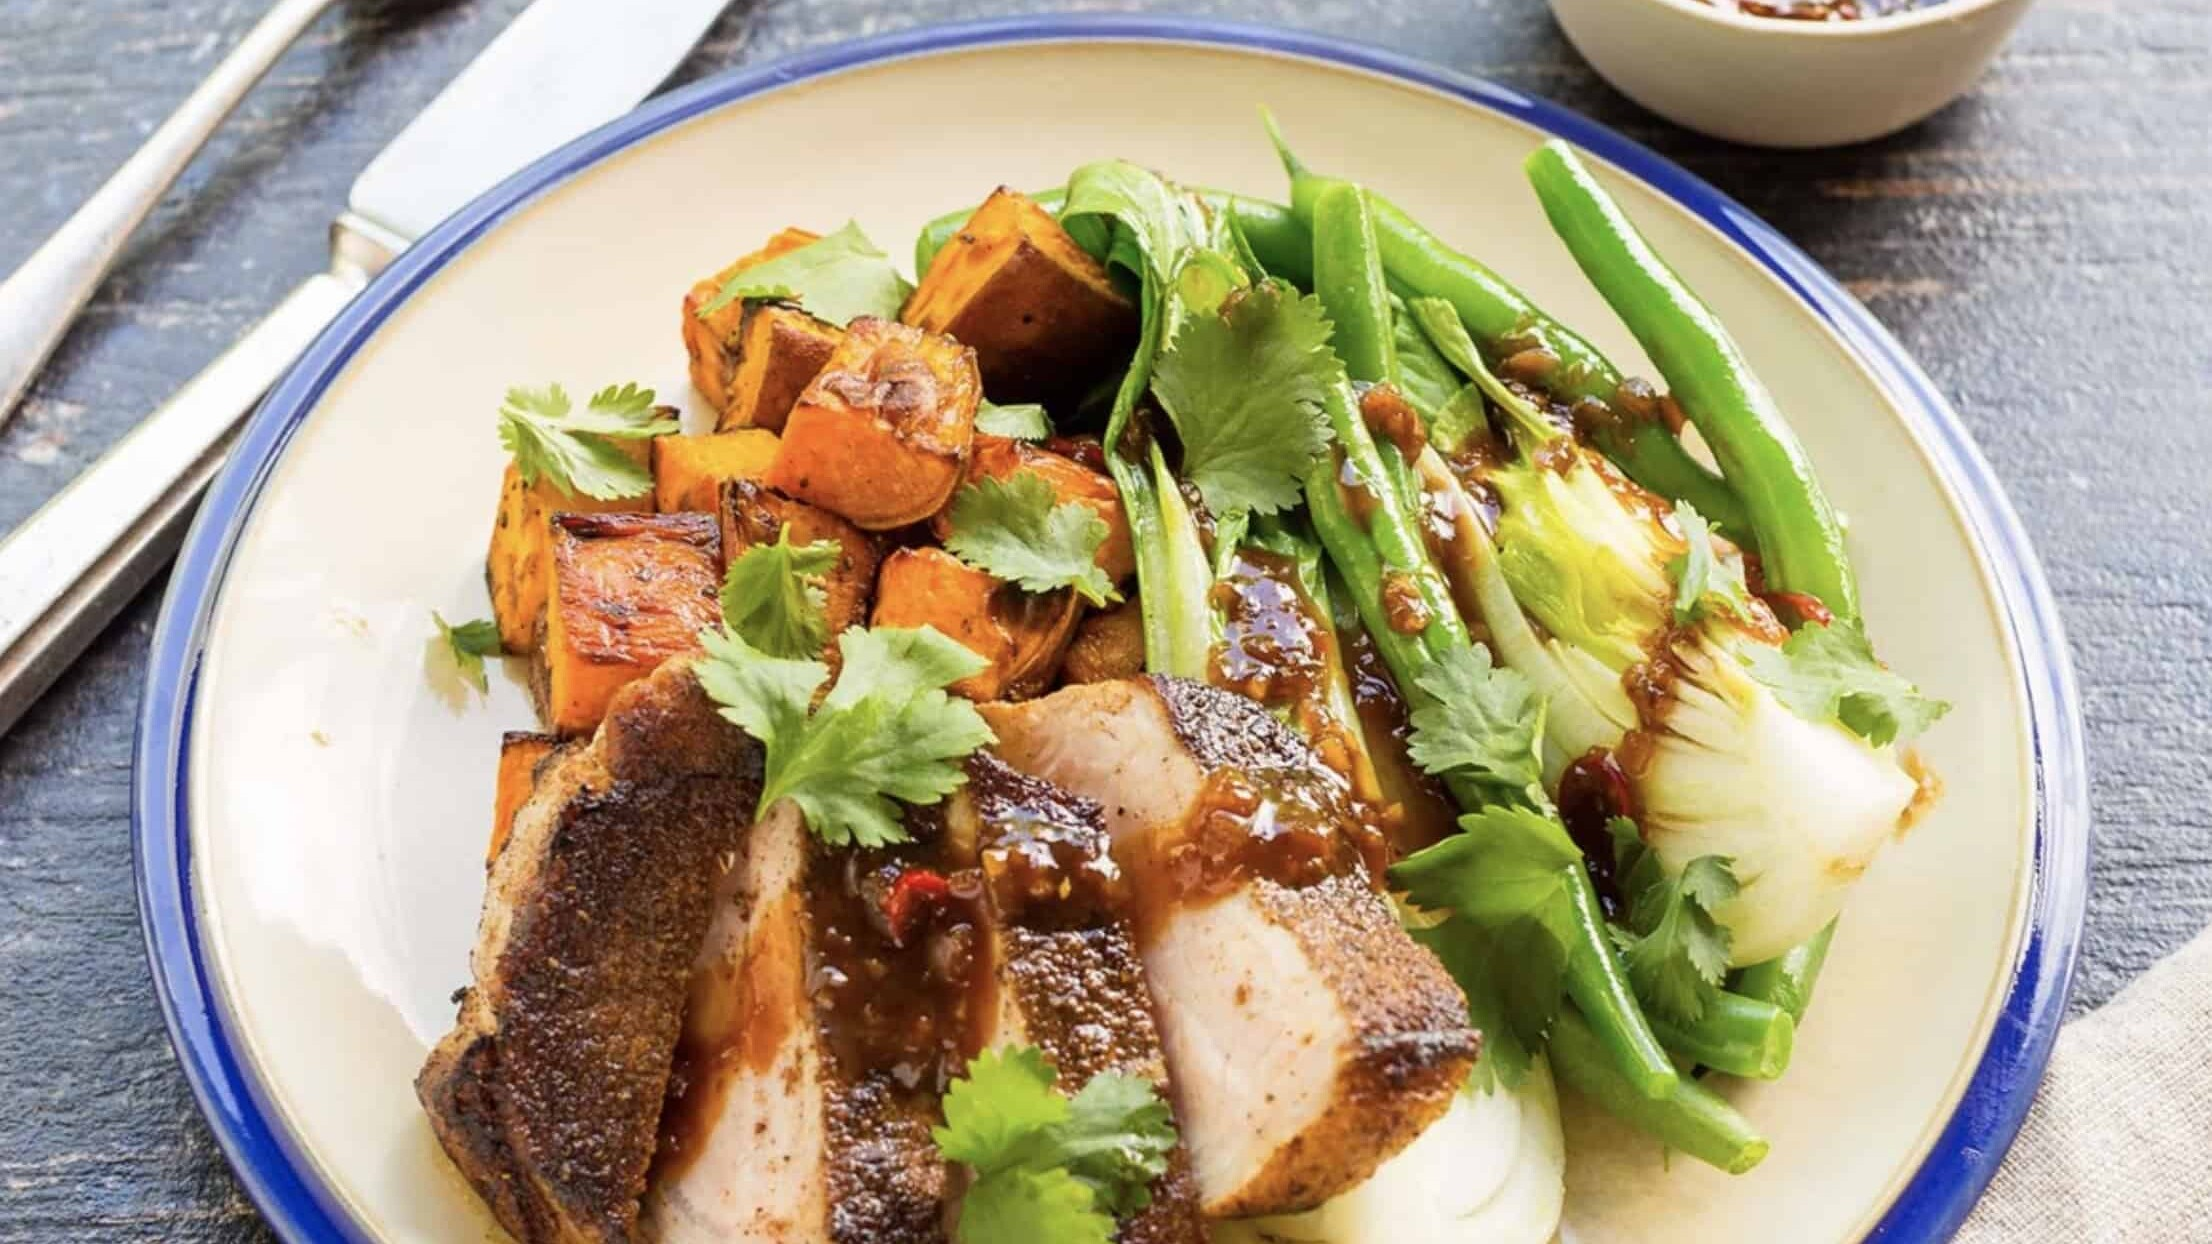 Pork Sirloin Steak with Roasted Pumpkin, Greens and Caramelised Chilli Sauce